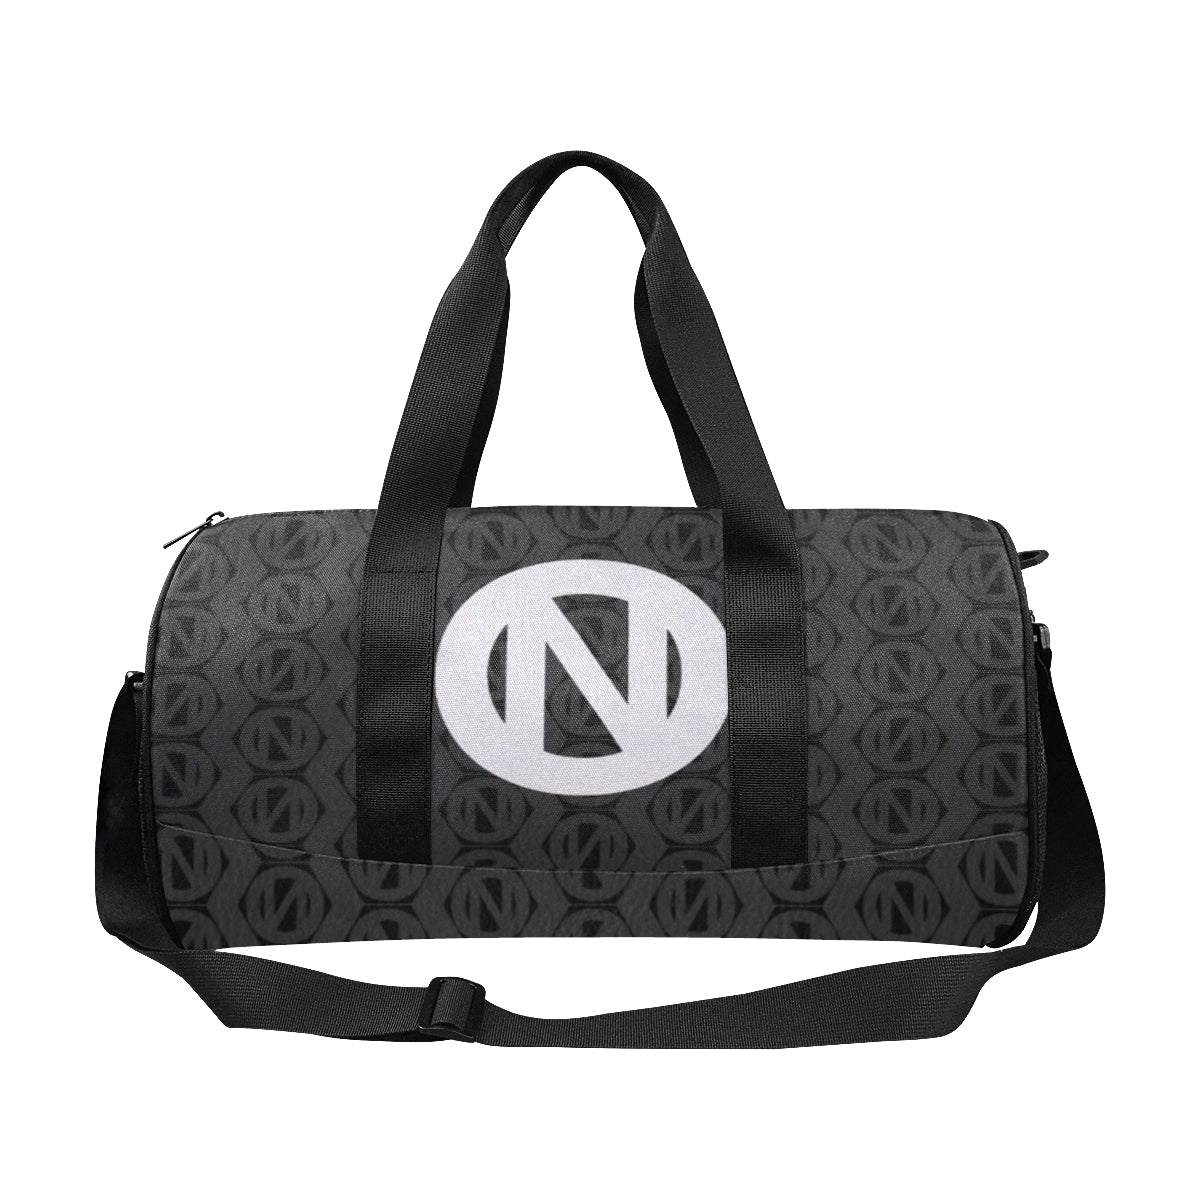 ONCE|NUDE [Black] Hexagon Print Travel Tote - ONCE|NUDE